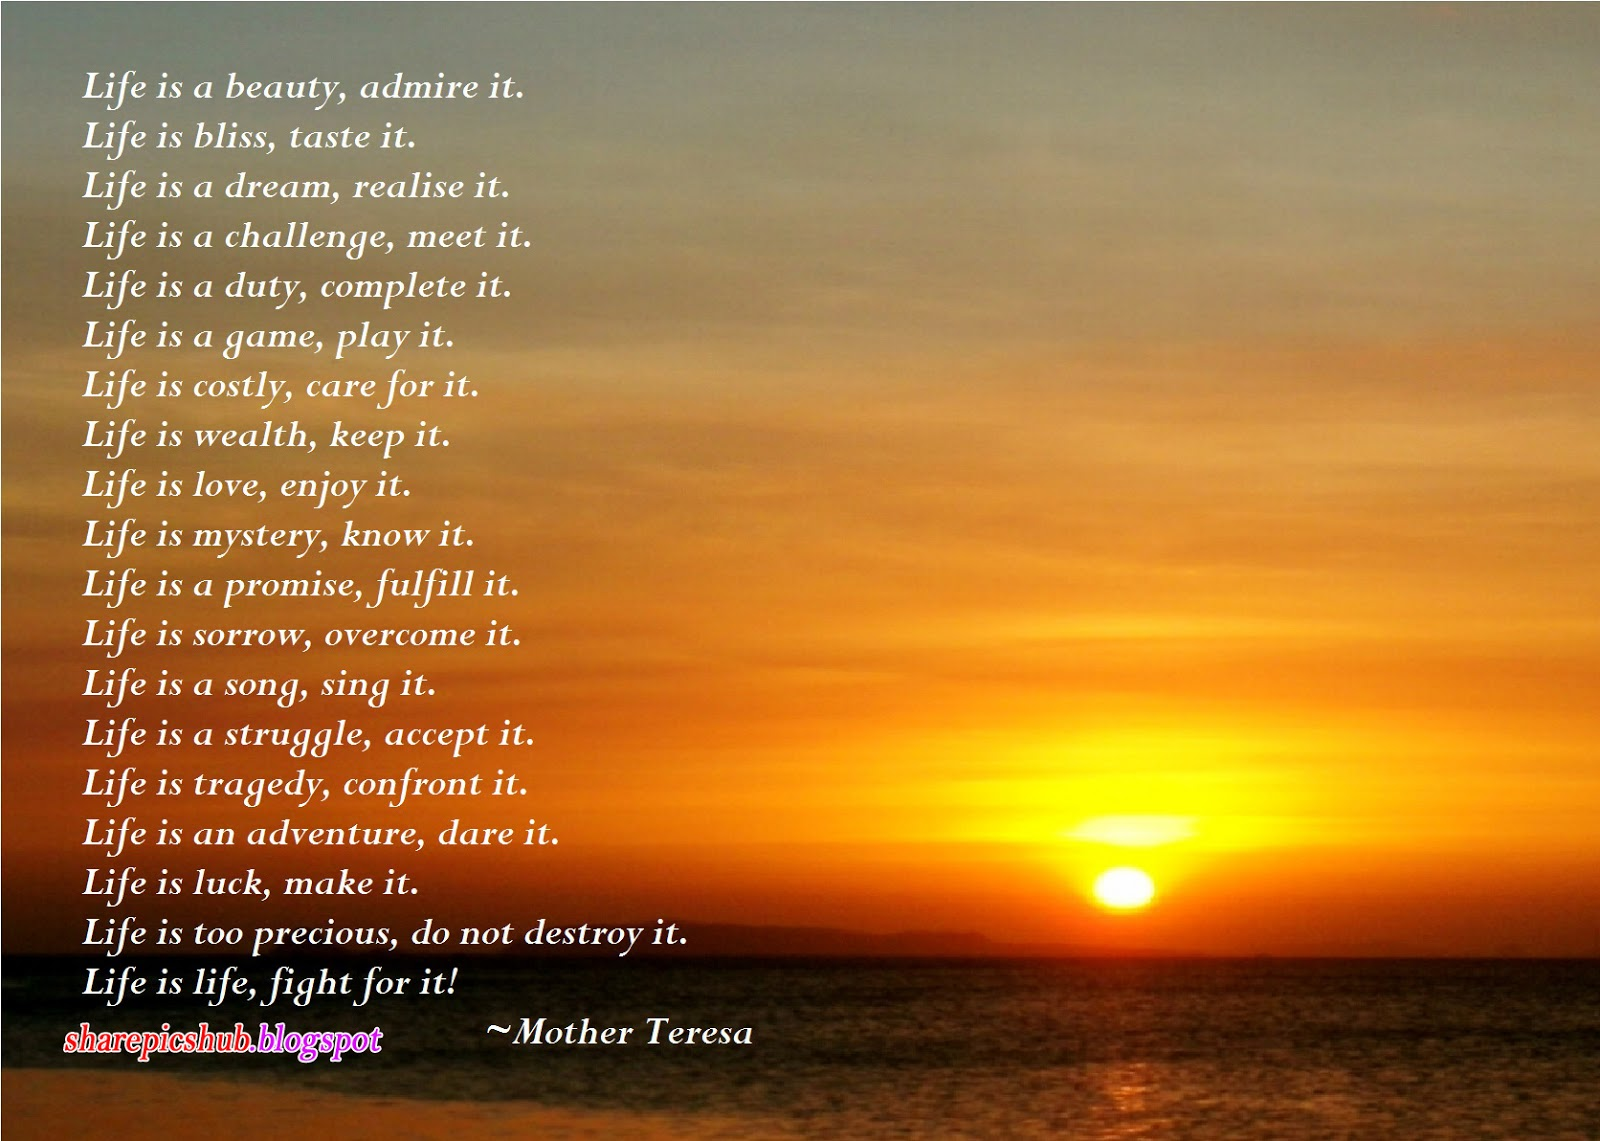 Teresa Beautiful Poem in English Mother Teresa Quotes Wallpapers 1600x1141